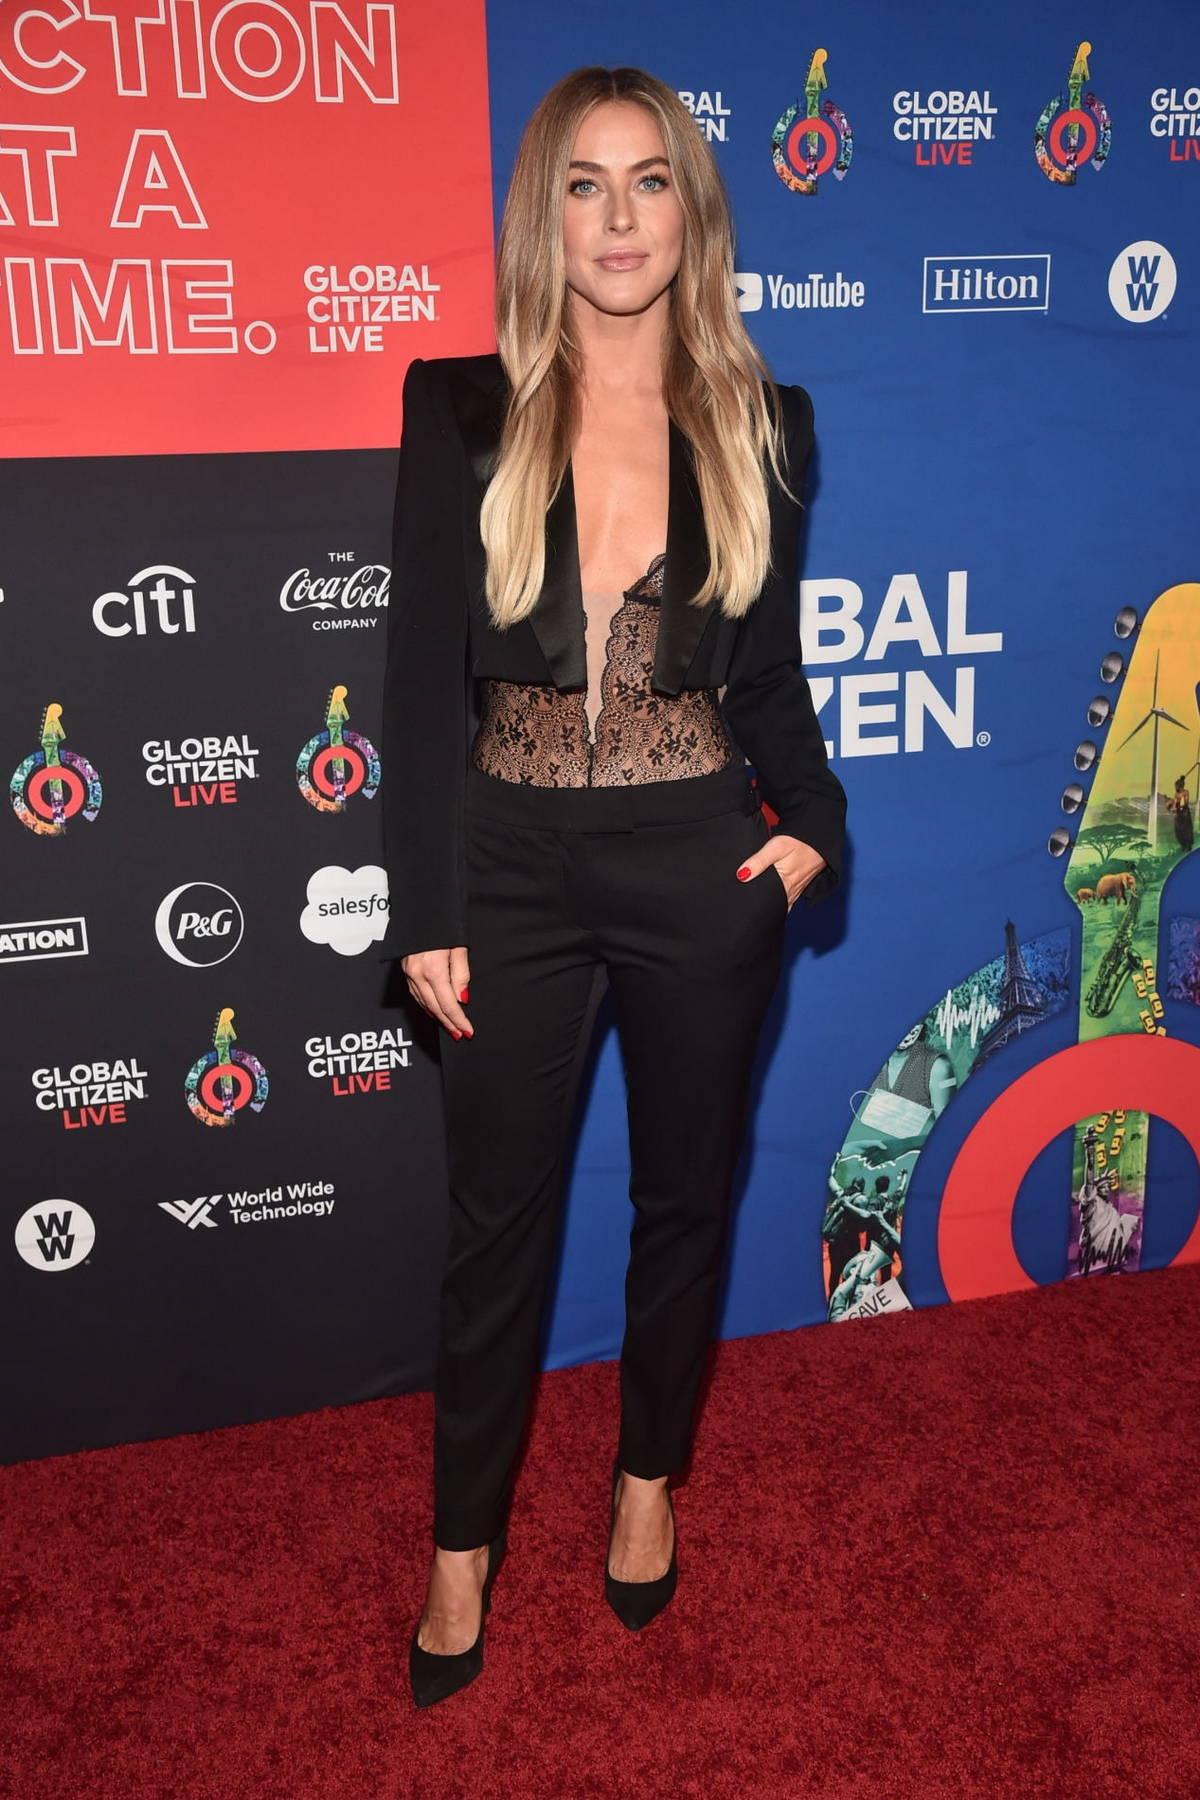 Julianne Hough attends the 2021 Global Citizen Live in Los Angeles